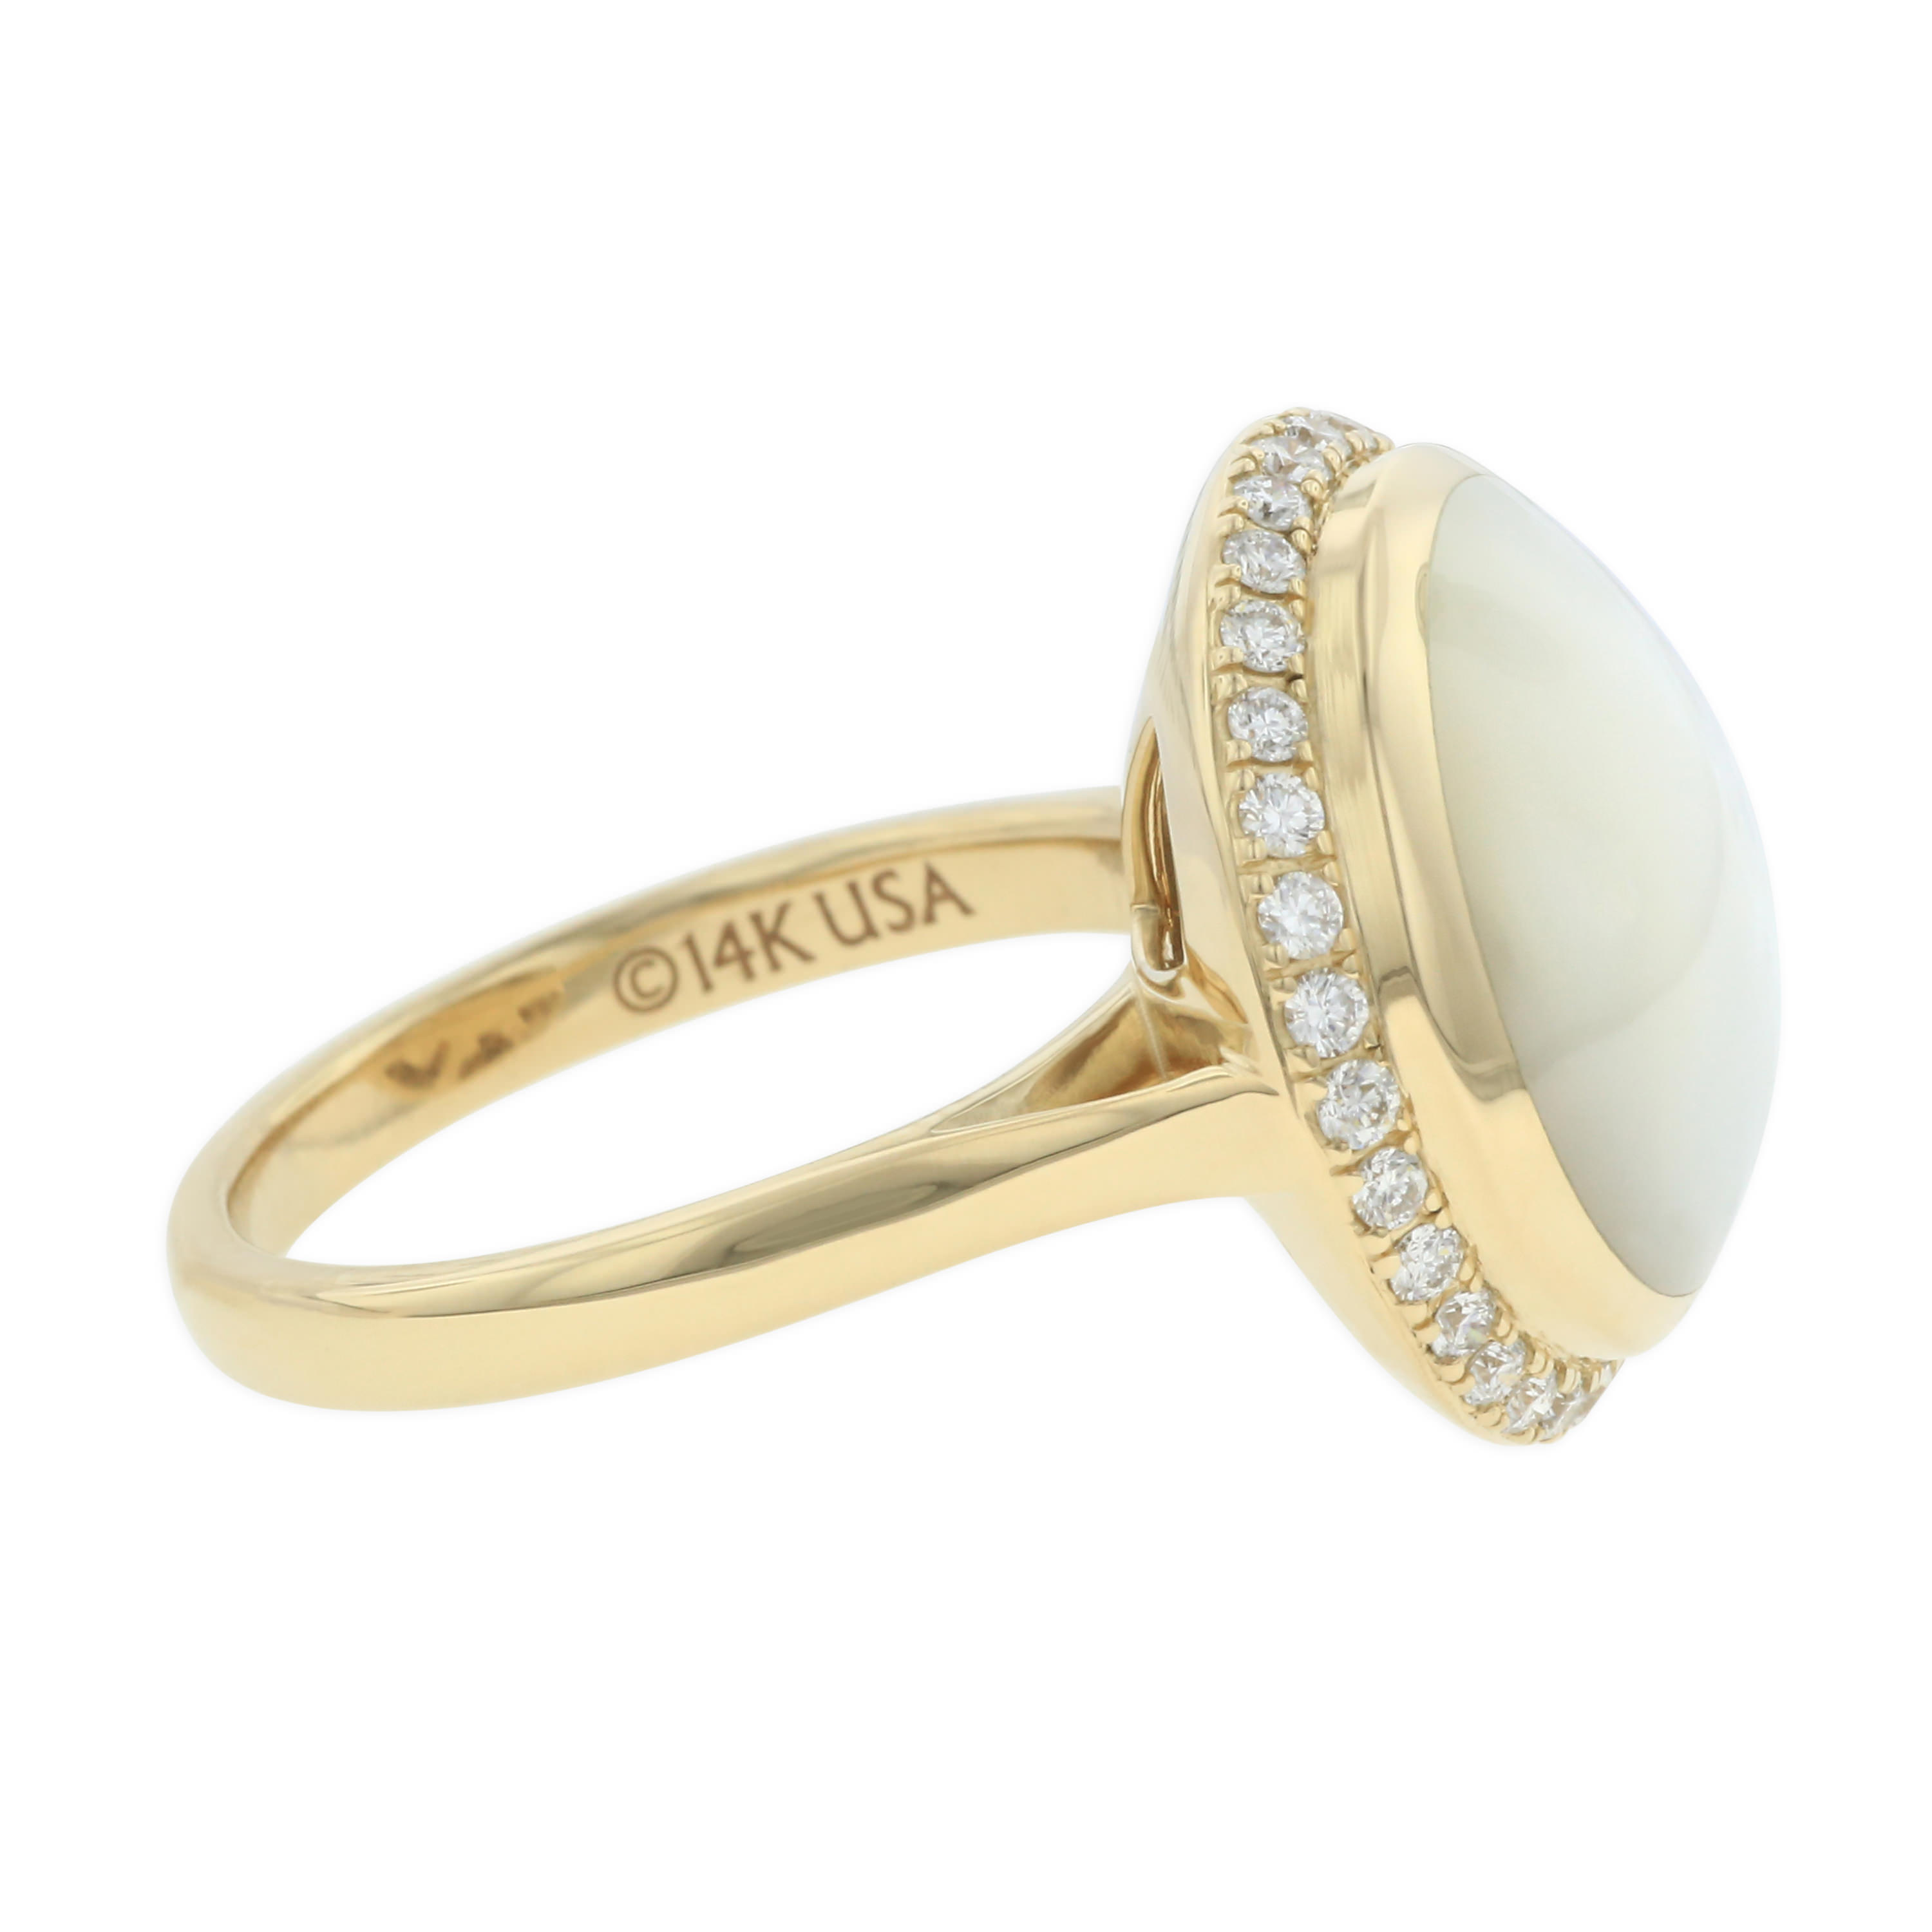 14 Kt Yellow Gold Ring With Inlay And Diamonds  Kabana. Birthstone Engagement Rings. Urn Necklace. Mother Child Pendant. Racing Bracelet. Layer Rings. Mum Bracelet. Effy Pendant. 2ct Rings